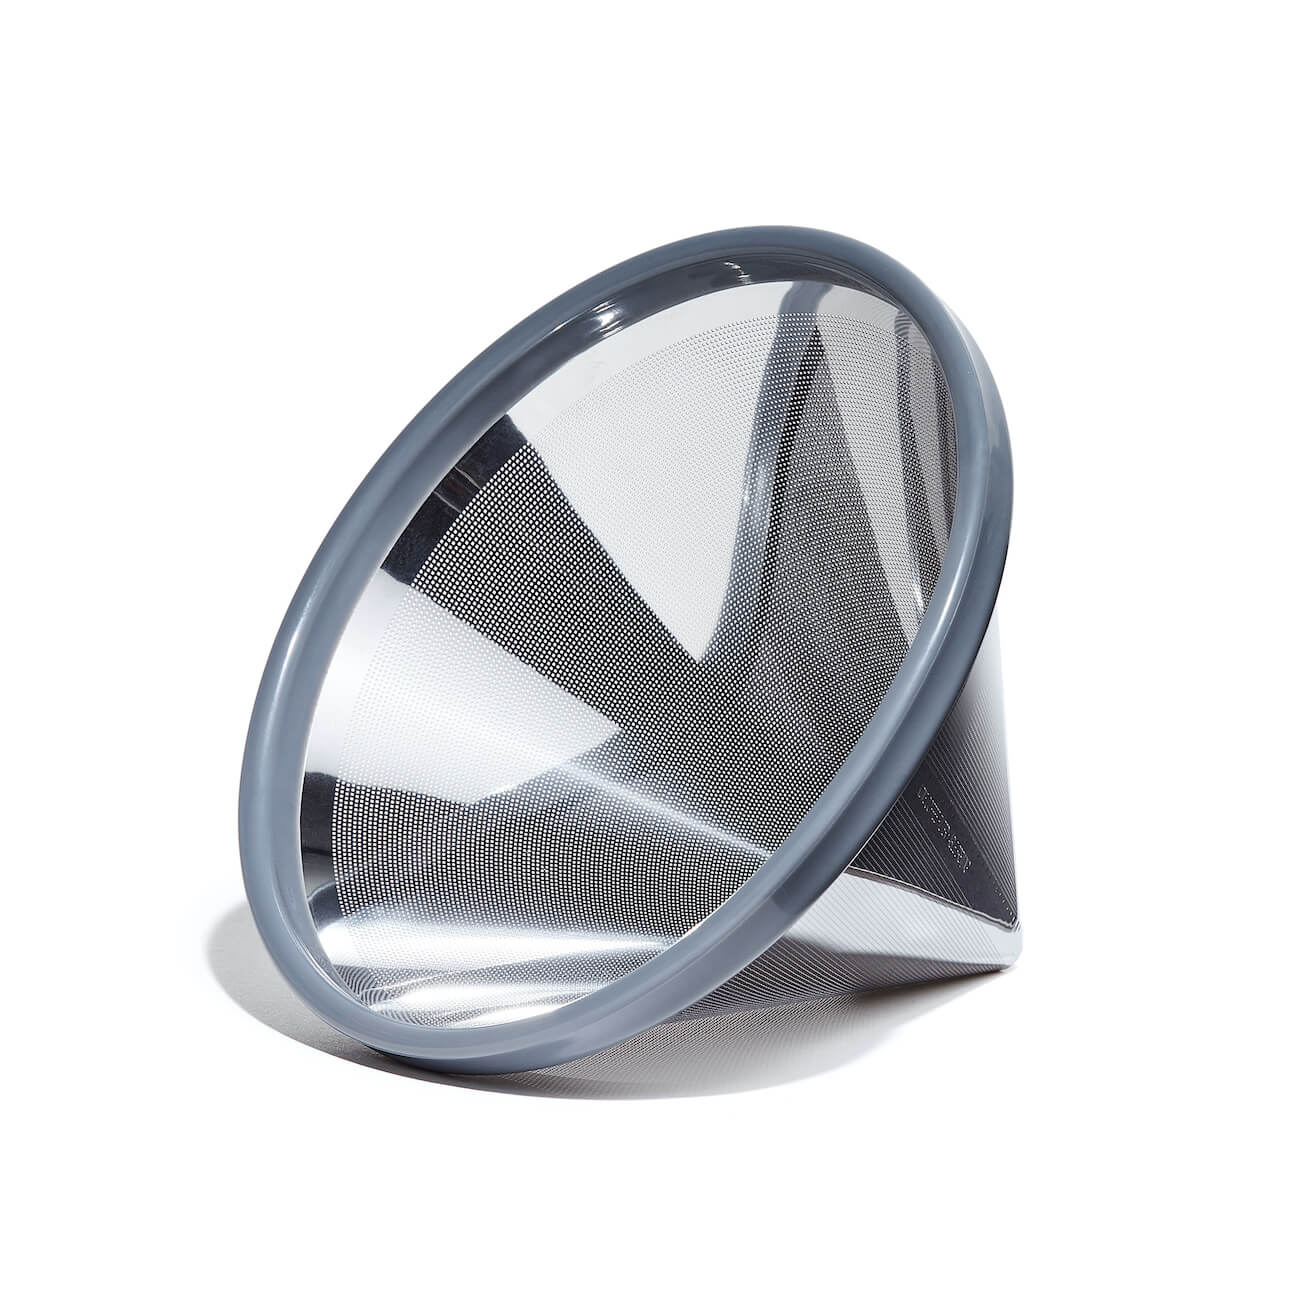 Ratio Kone Coffee Filter by Able